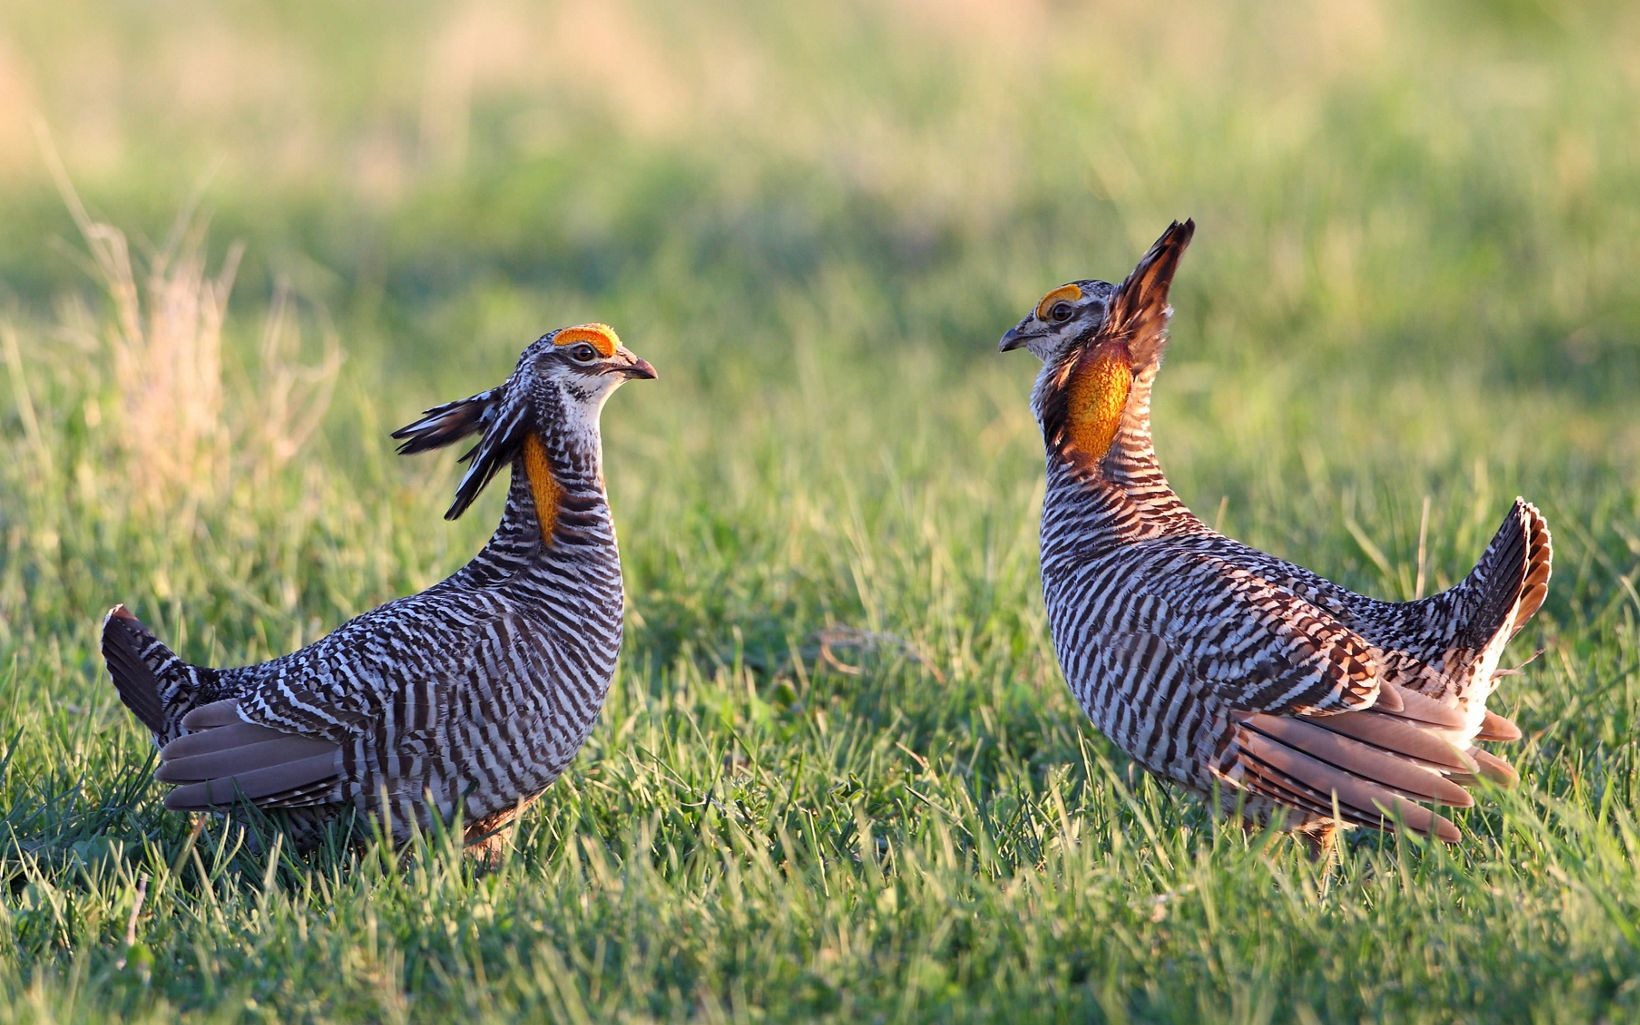 Prairie chickens on the prairie